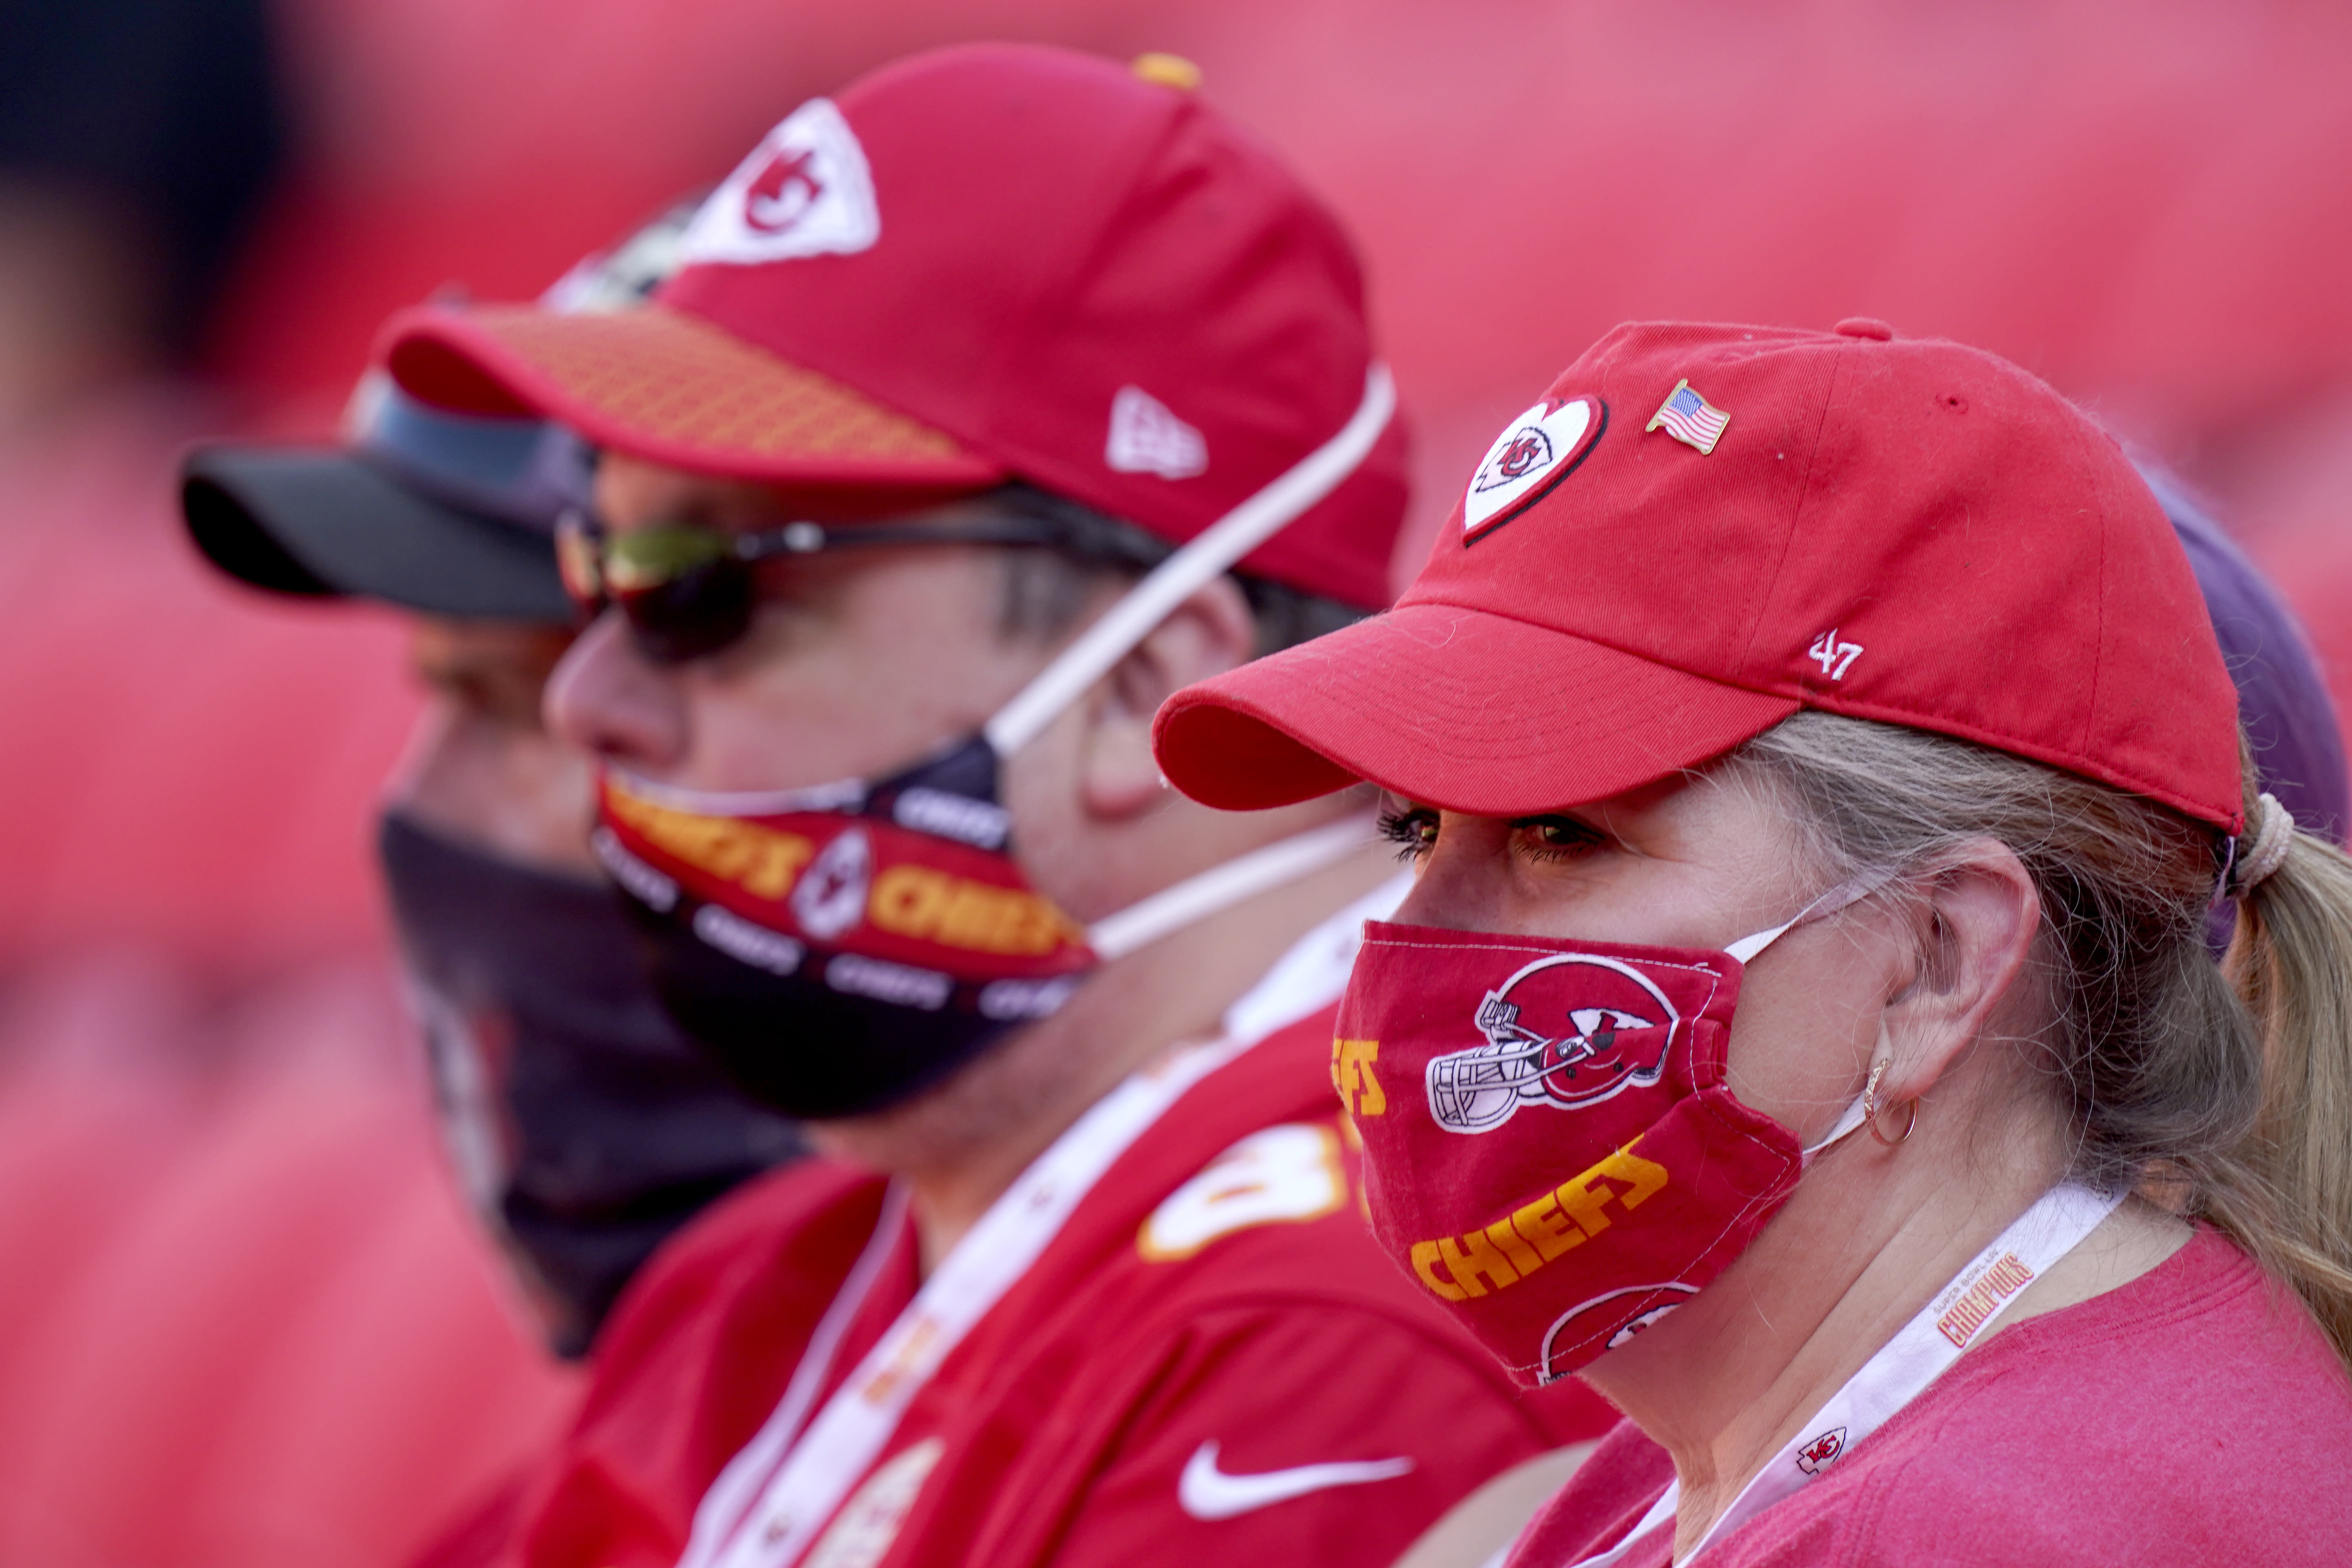 Fans wearing face masks watch the Kansas City Chiefs during an NFL football training camp Saturday, Aug. 22, 2020, at Arrowhead Stadium in Kansas City, Mo. The Chiefs opened the stadium to 2,000 season ticket holders to watch practice as the team plans to open the regular season with a reduced capacity of approximately 22 percent or normal. (AP Photo/Charlie Riedel)